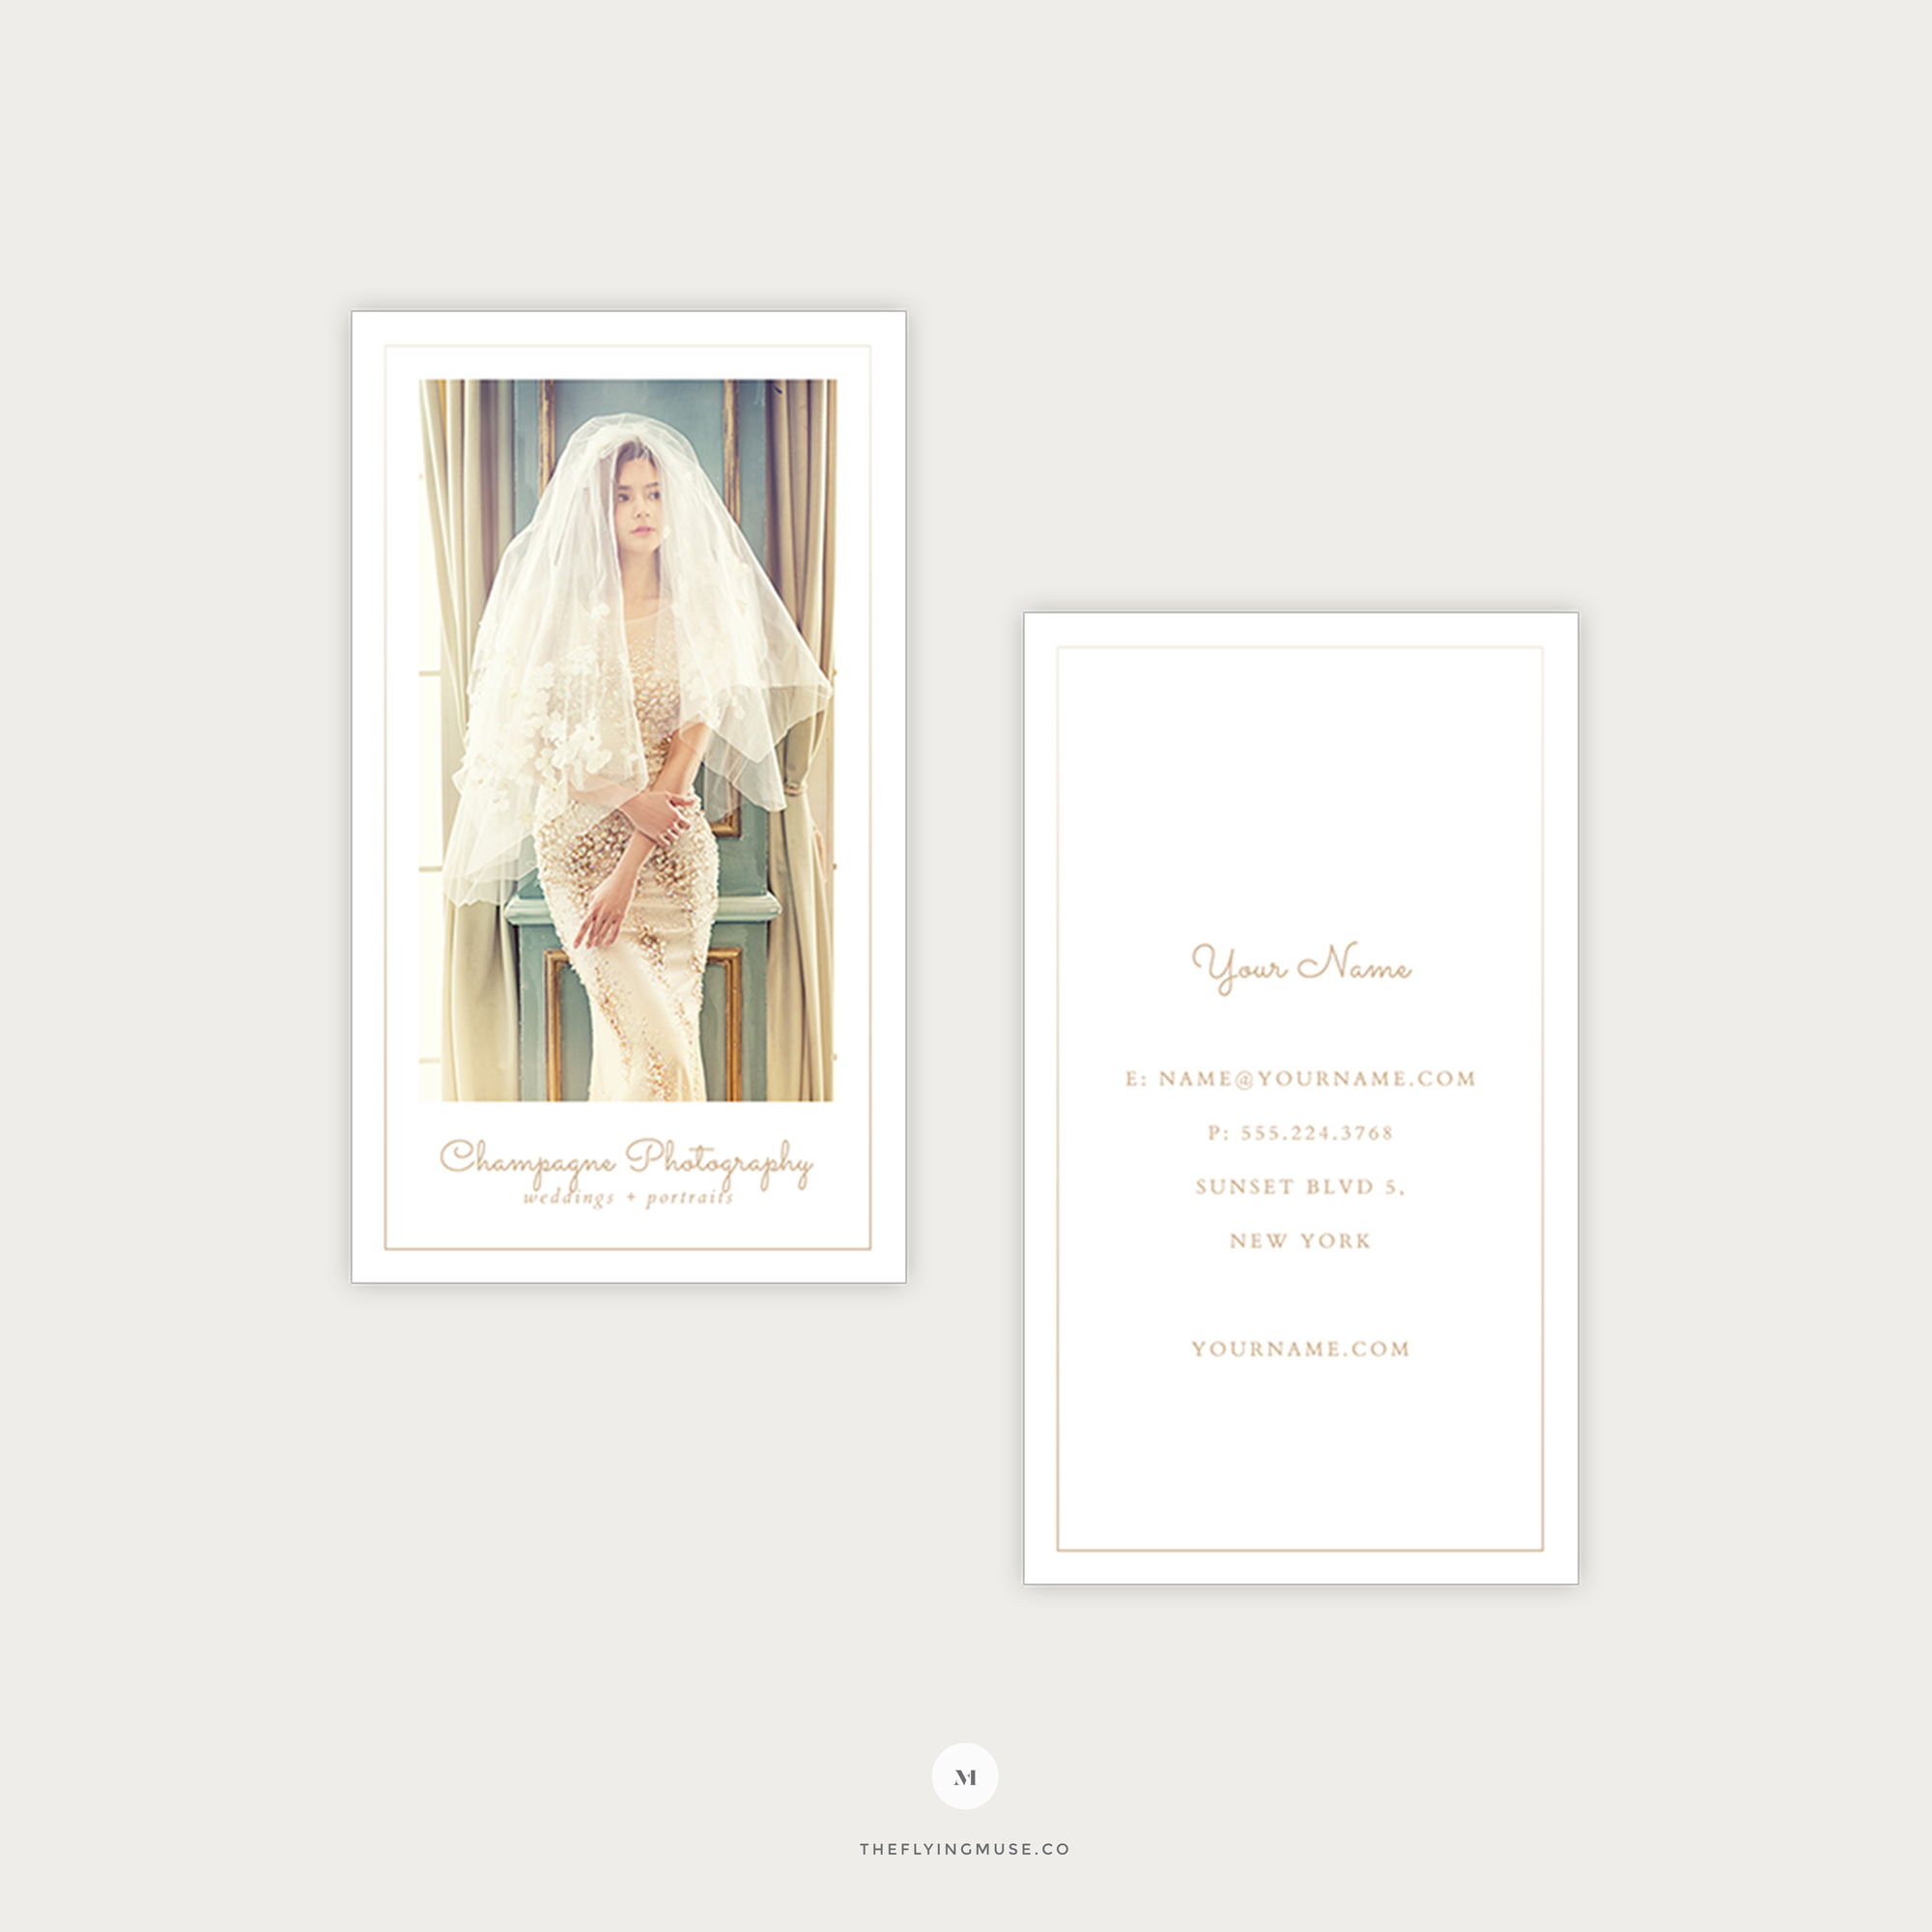 Minimal Wedding Photography Business Cards Template